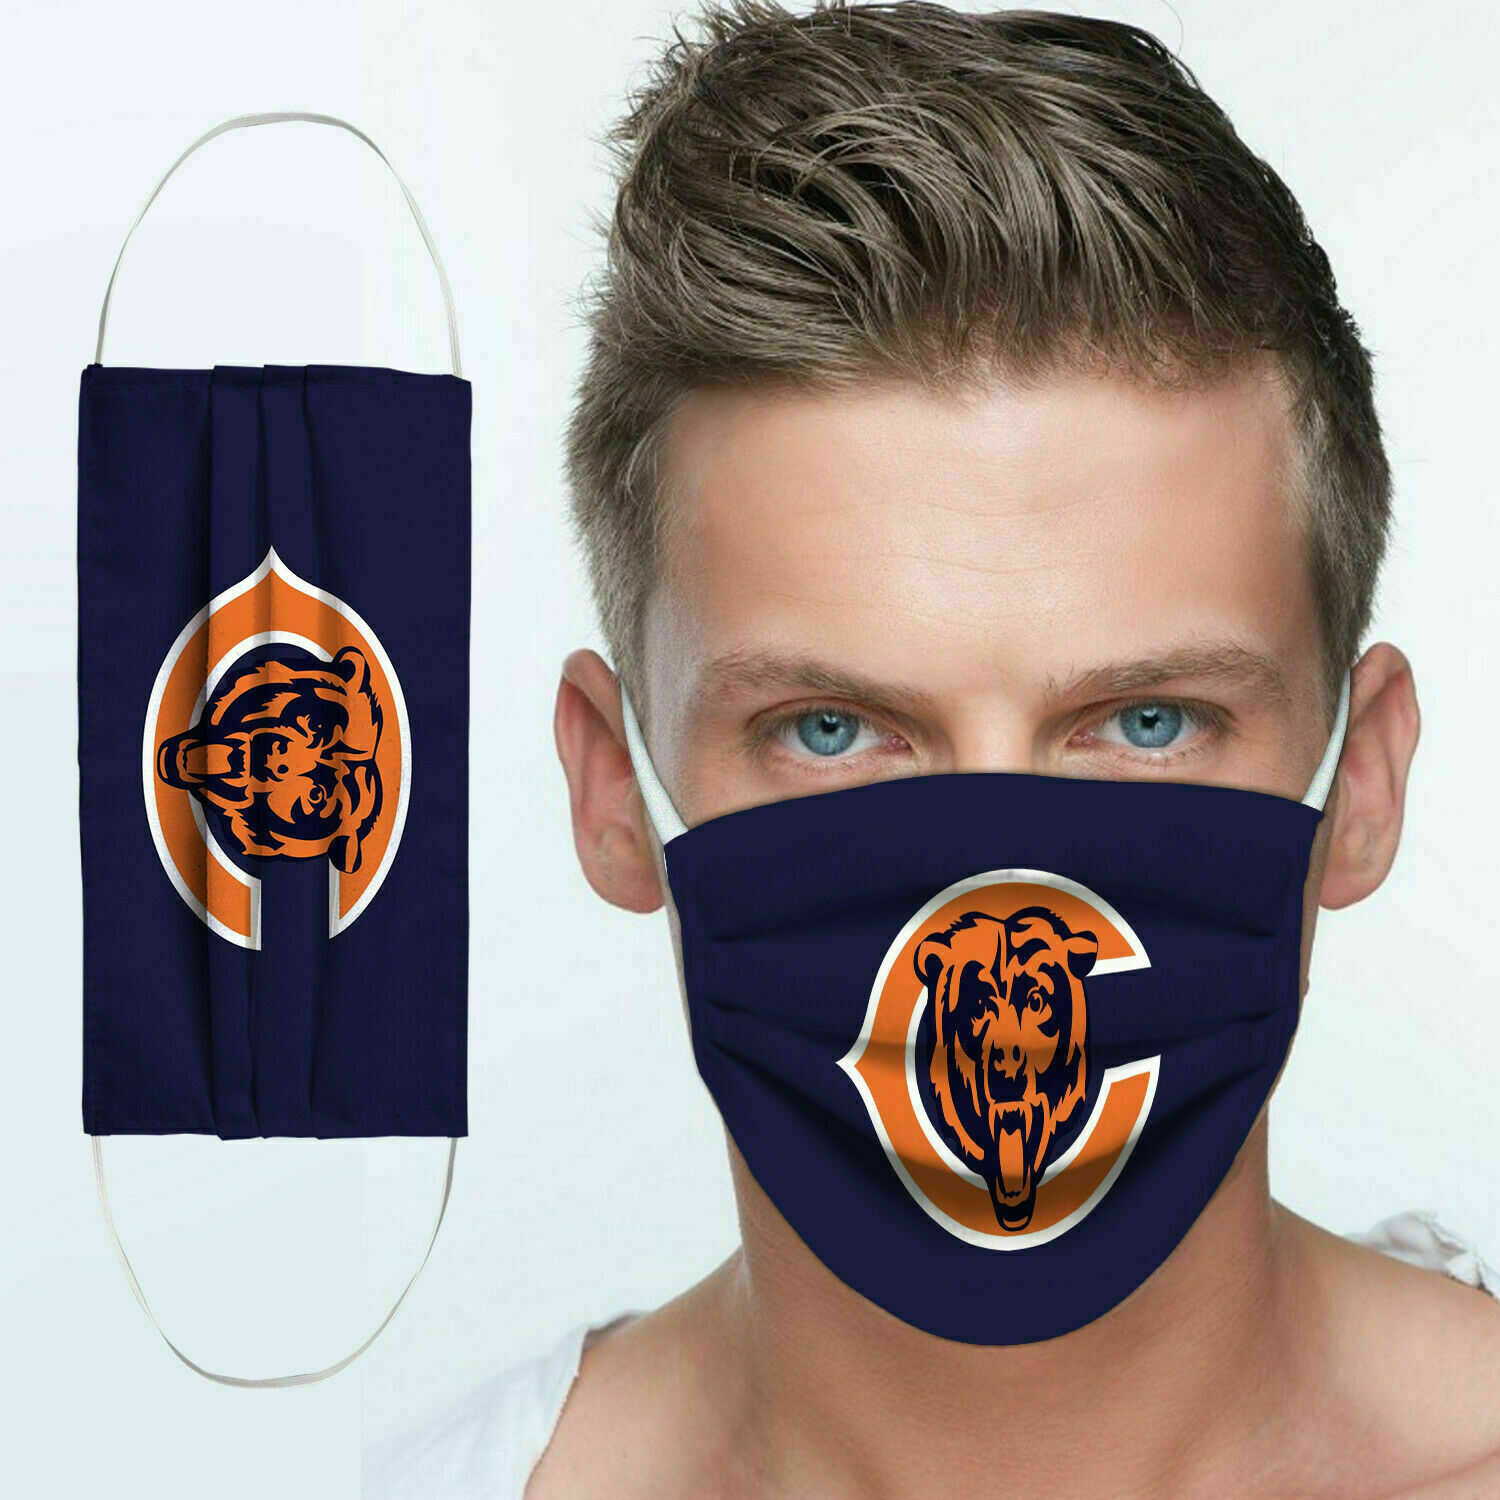 National football league chicago bears team cotton face mask 1